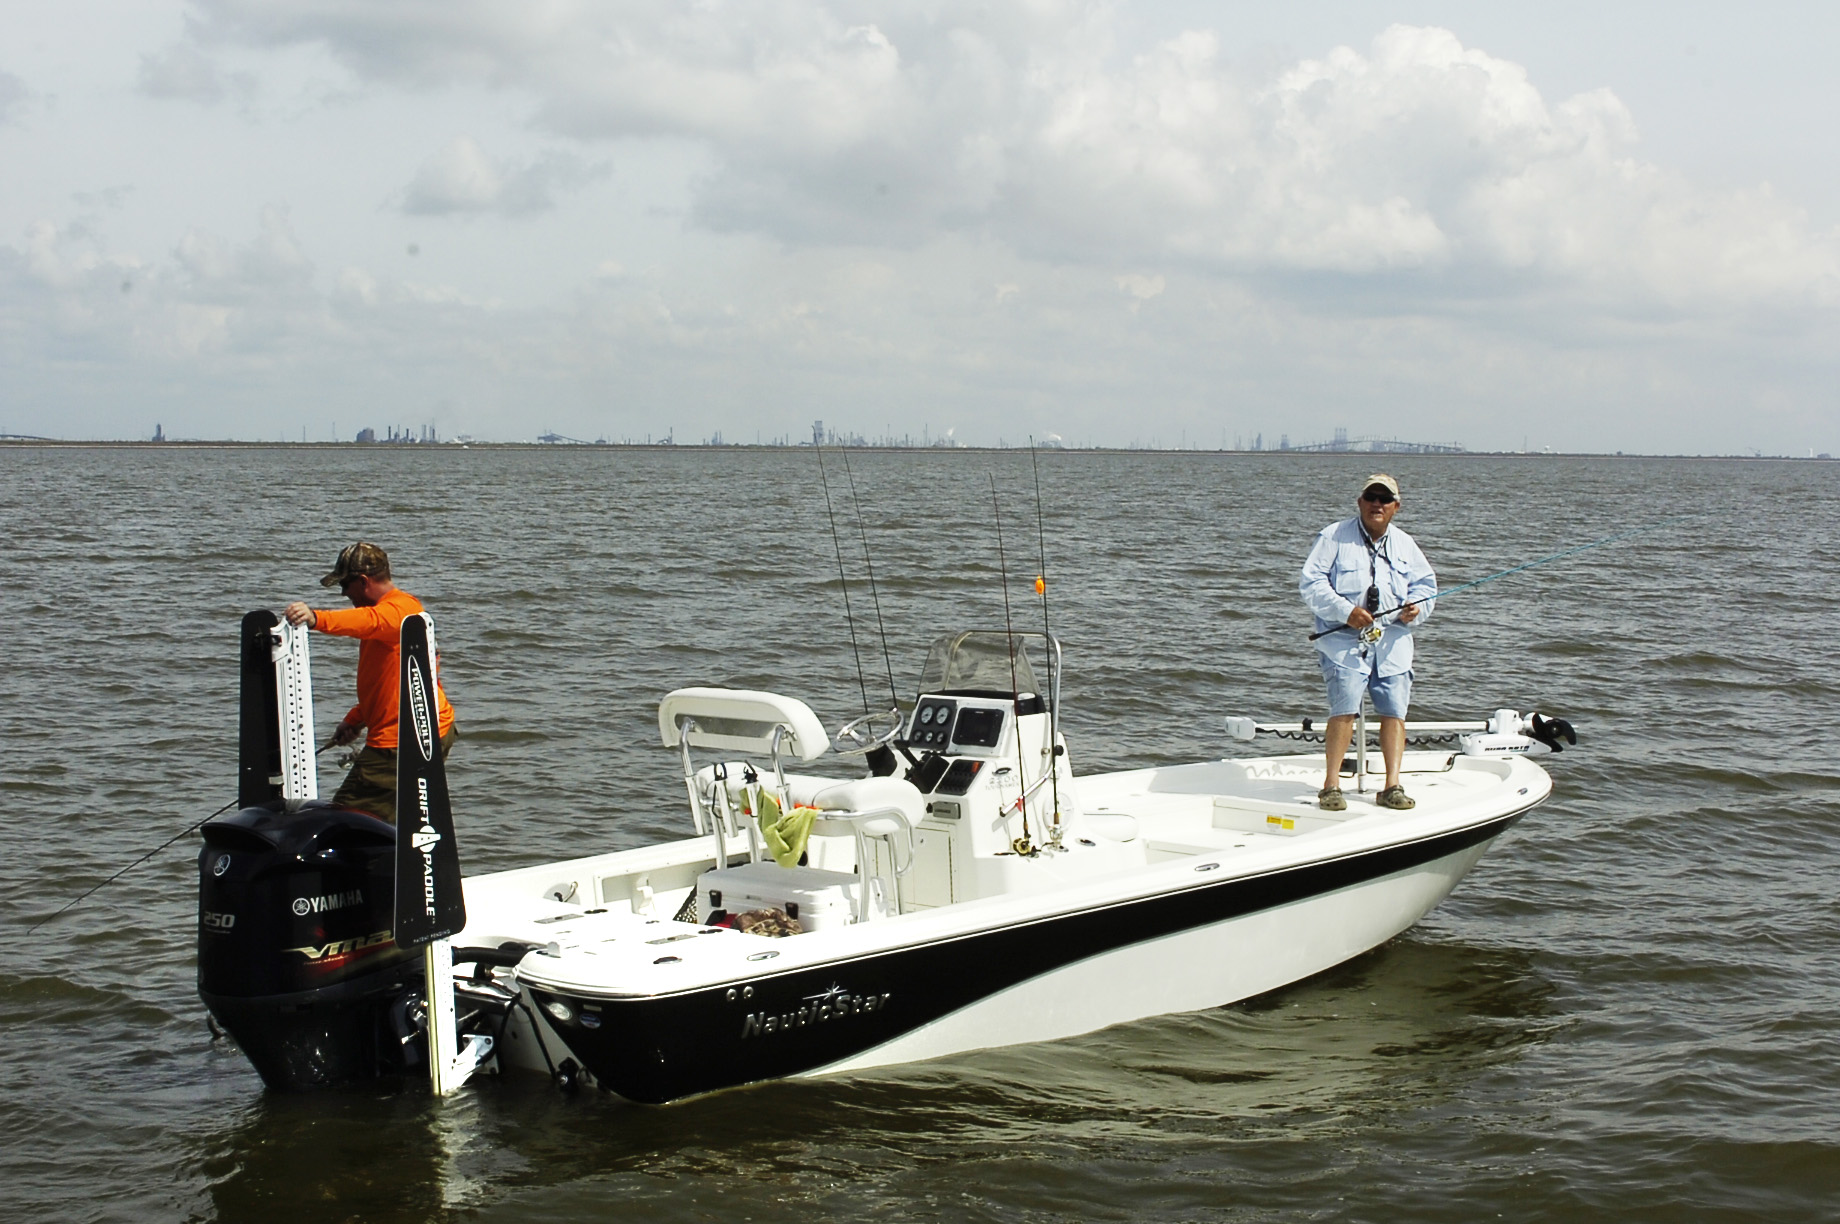 Fishing could get a boost from sabine lake reef project for Sabine pass fishing report